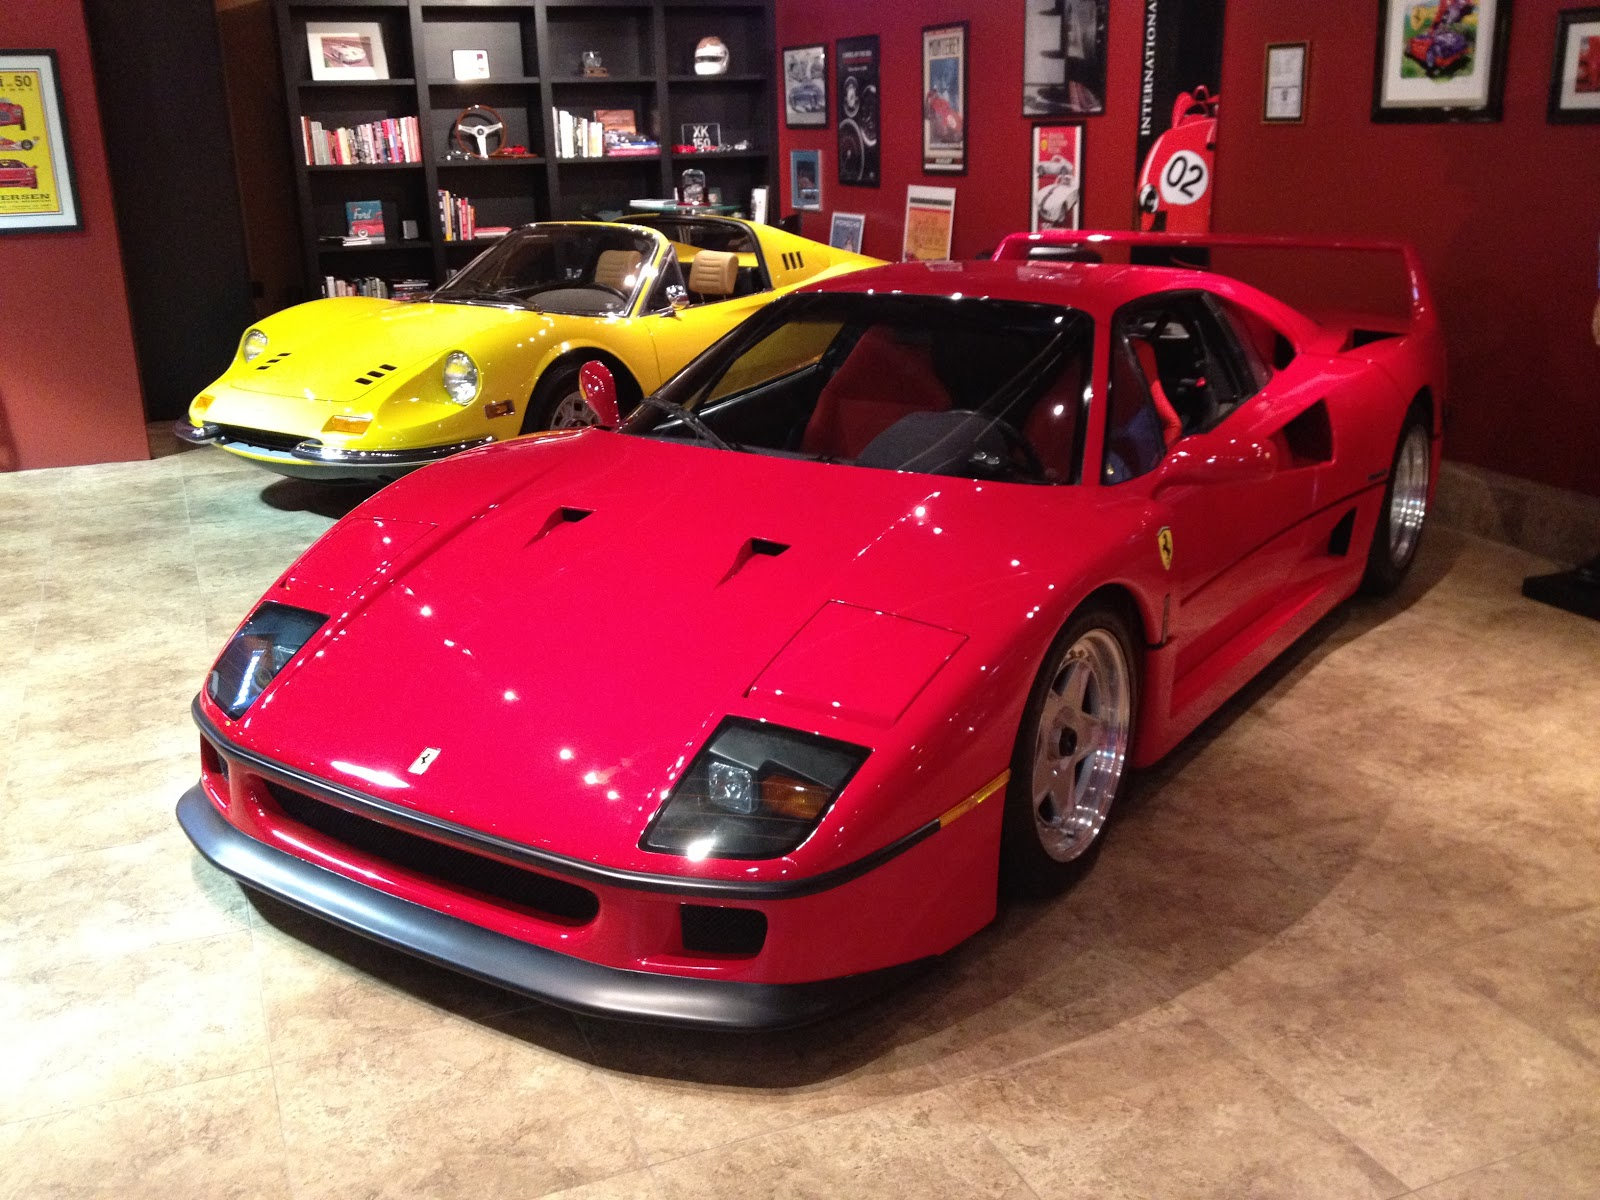 cover california where to everyone cars again ford forward hospitality and galpin at see classic auto covering event we ferrari look img in for the sports car